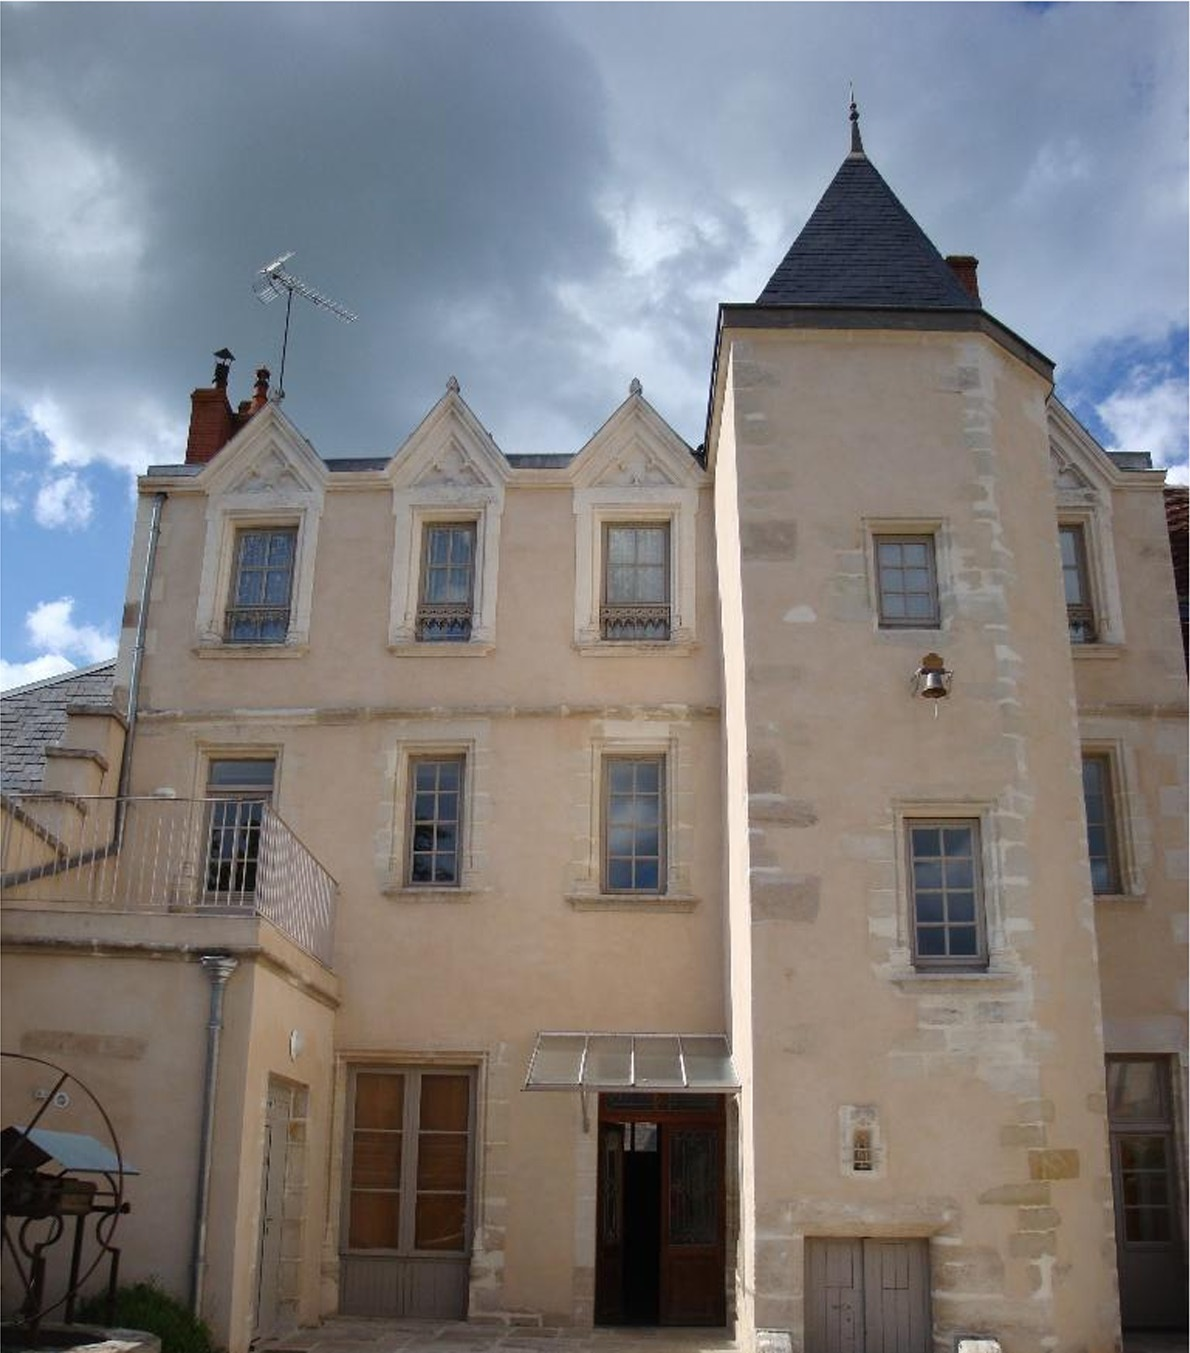 Le-Chateau-Varzy